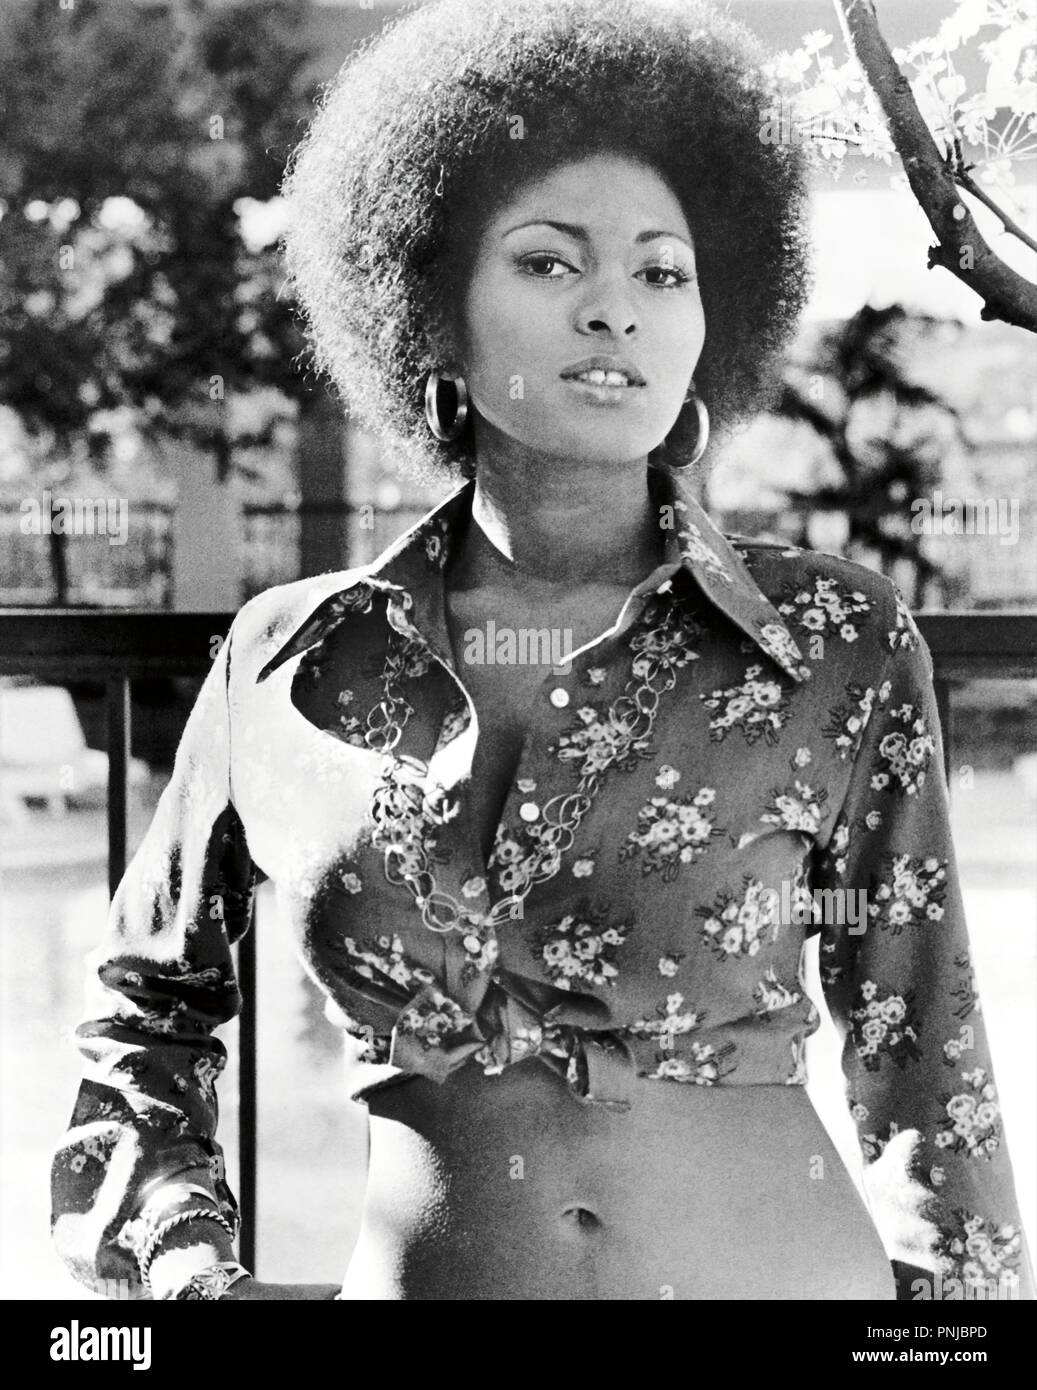 Original film title: COFFY. English title: COFFY. Year: 1973. Director: JACK HILL. Stars: PAM GRIER. Credit: AIP / Album - Stock Image